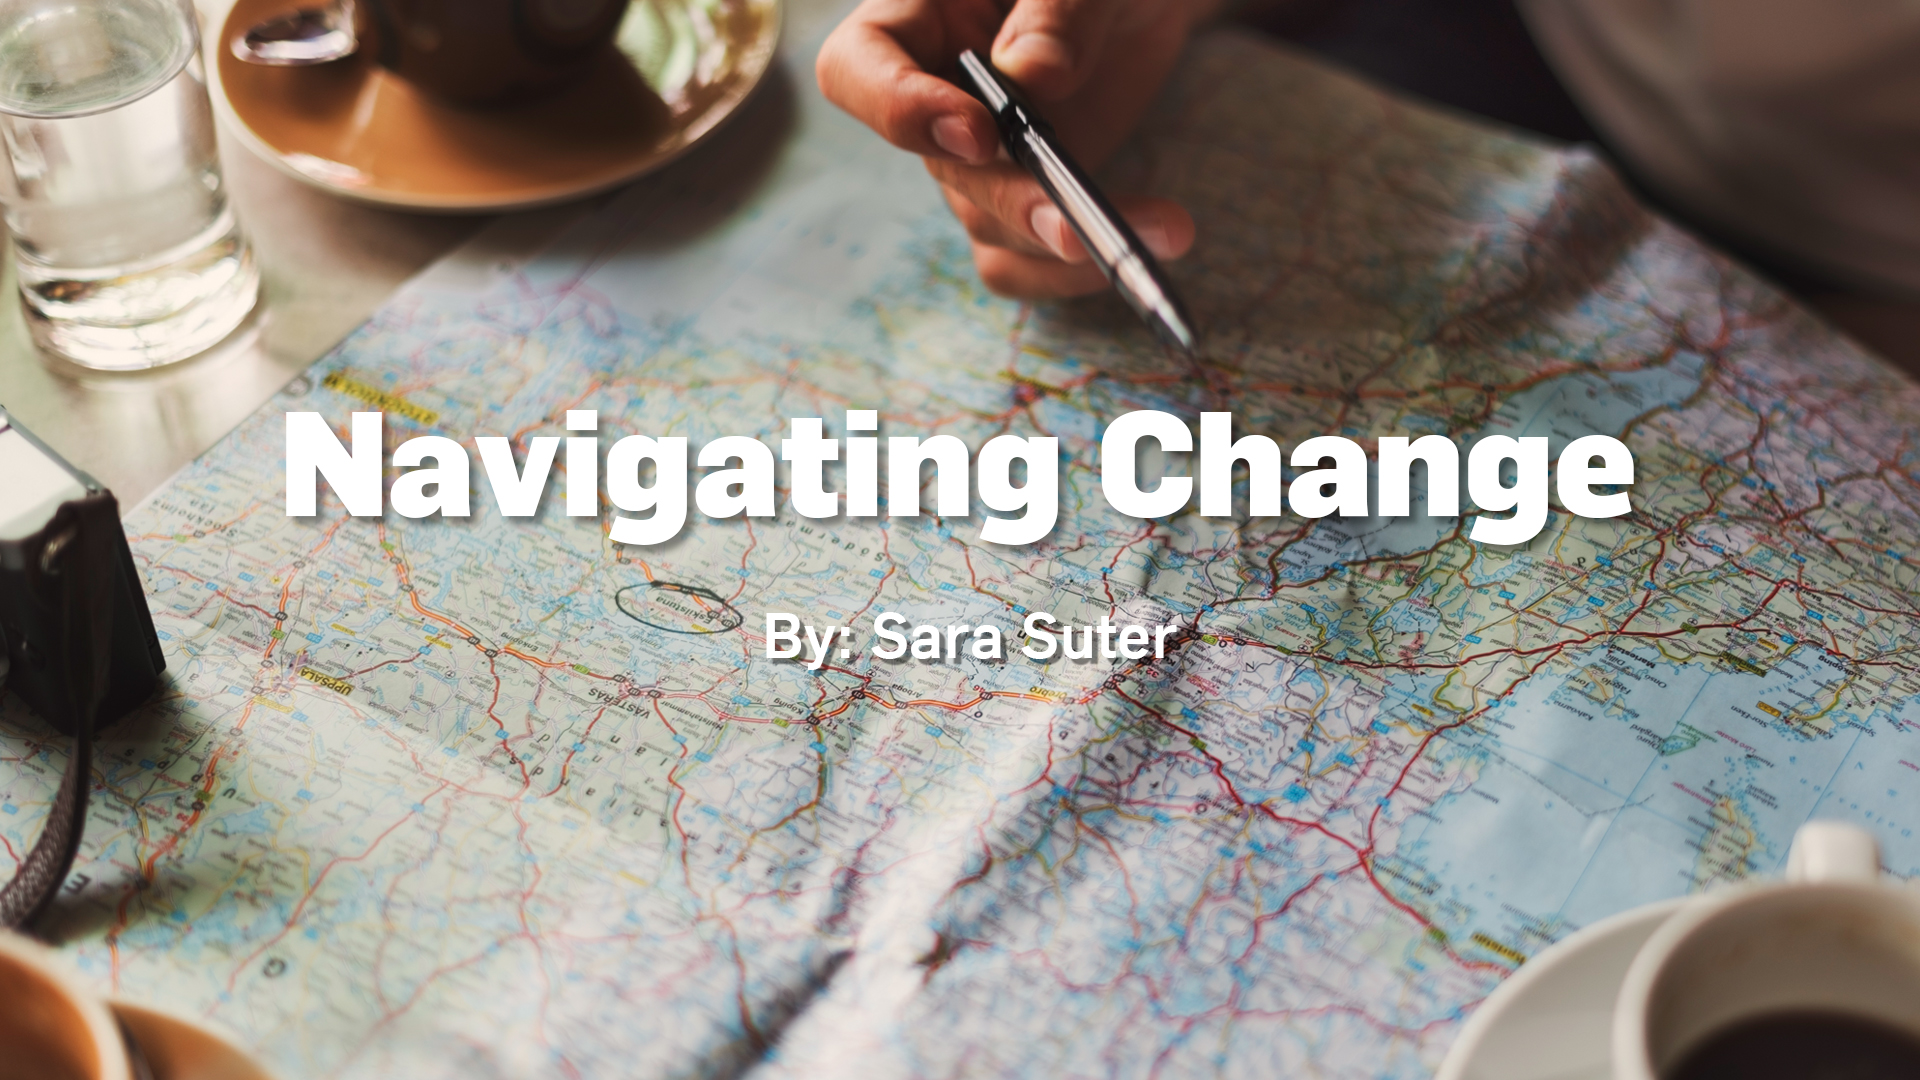 Blog Navigating Change 1920x1080.jpg